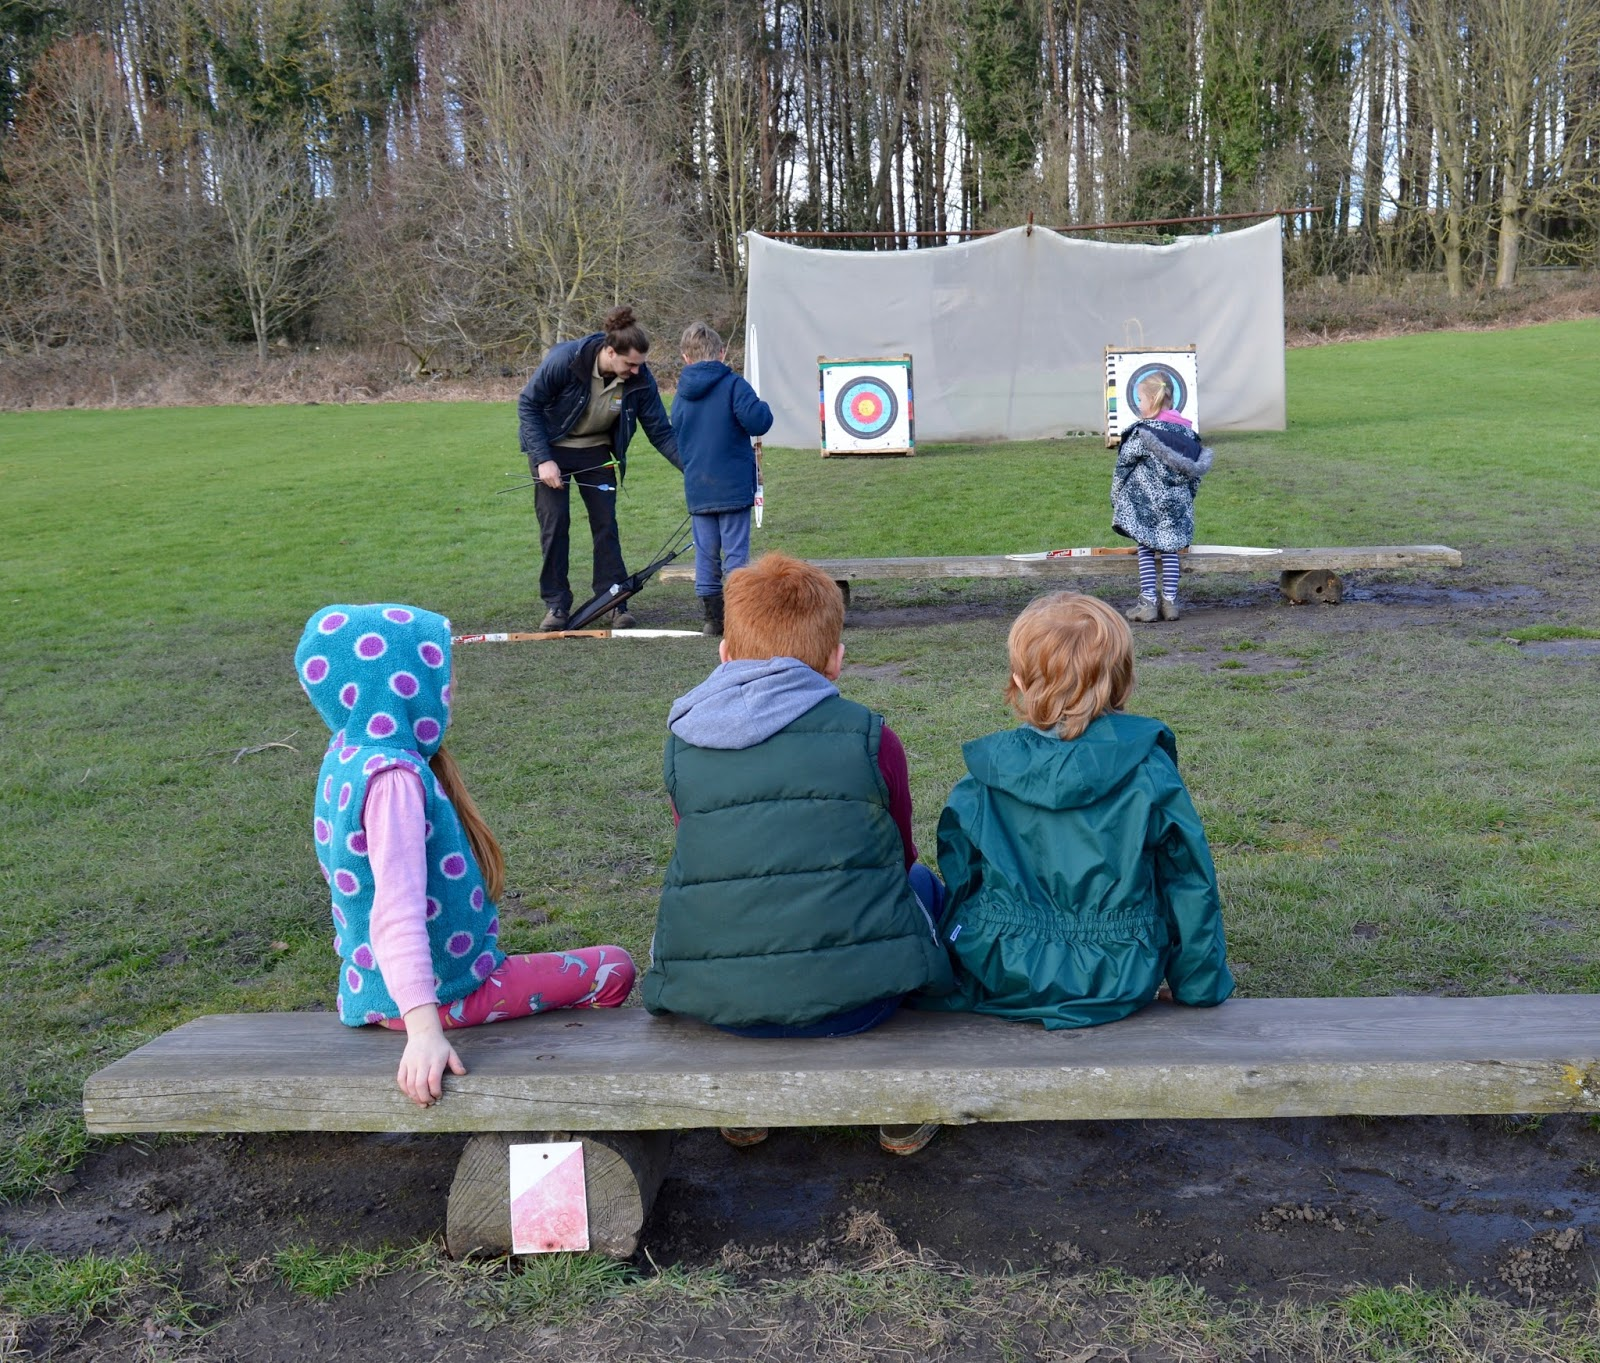 Beamish Wild | School Holiday Club & Activities in County Durham | North East England - archery safety breifing